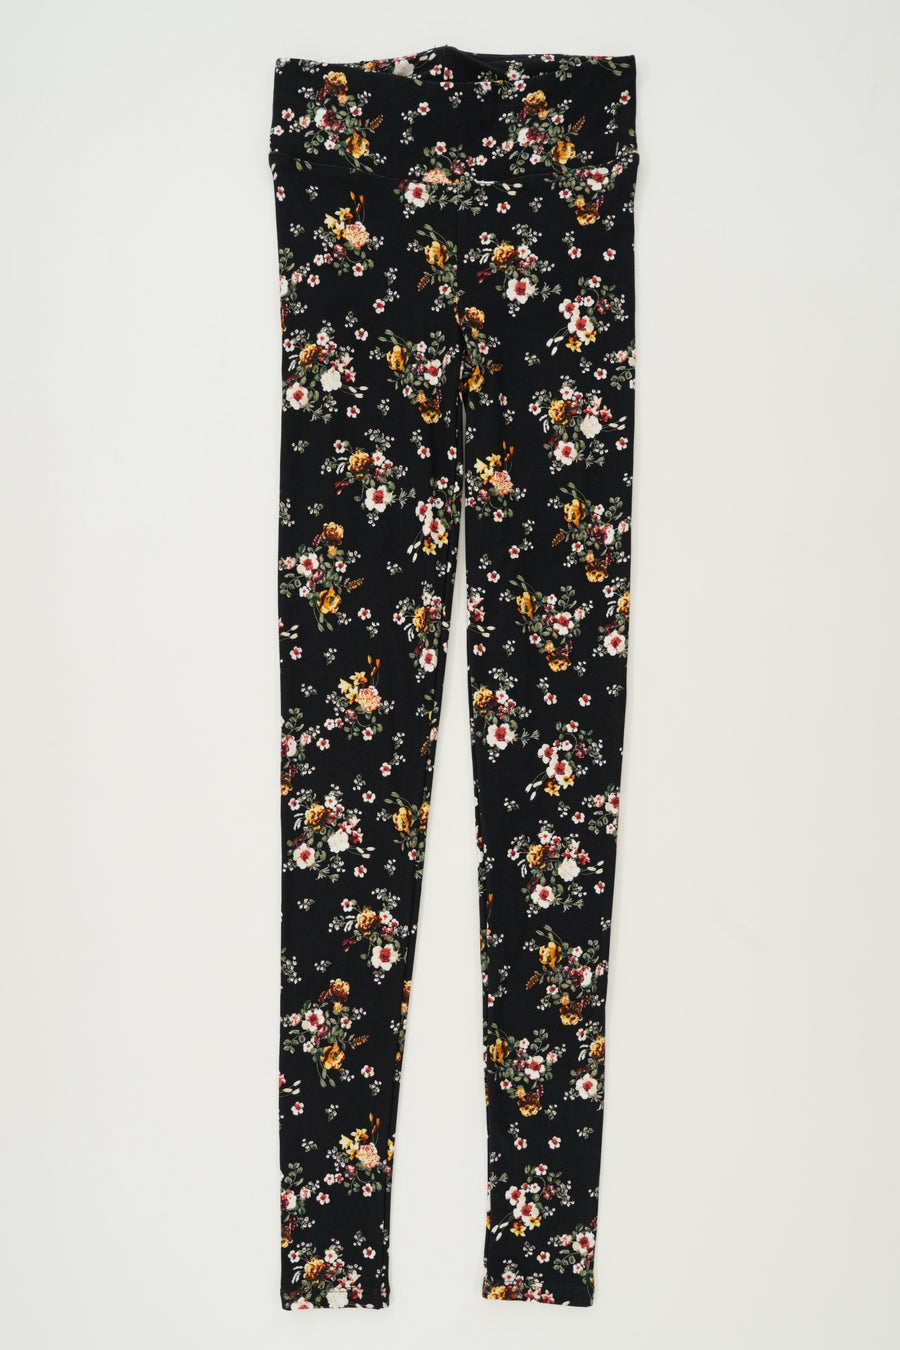 Planet Gold Floral Printed Legging Size XS